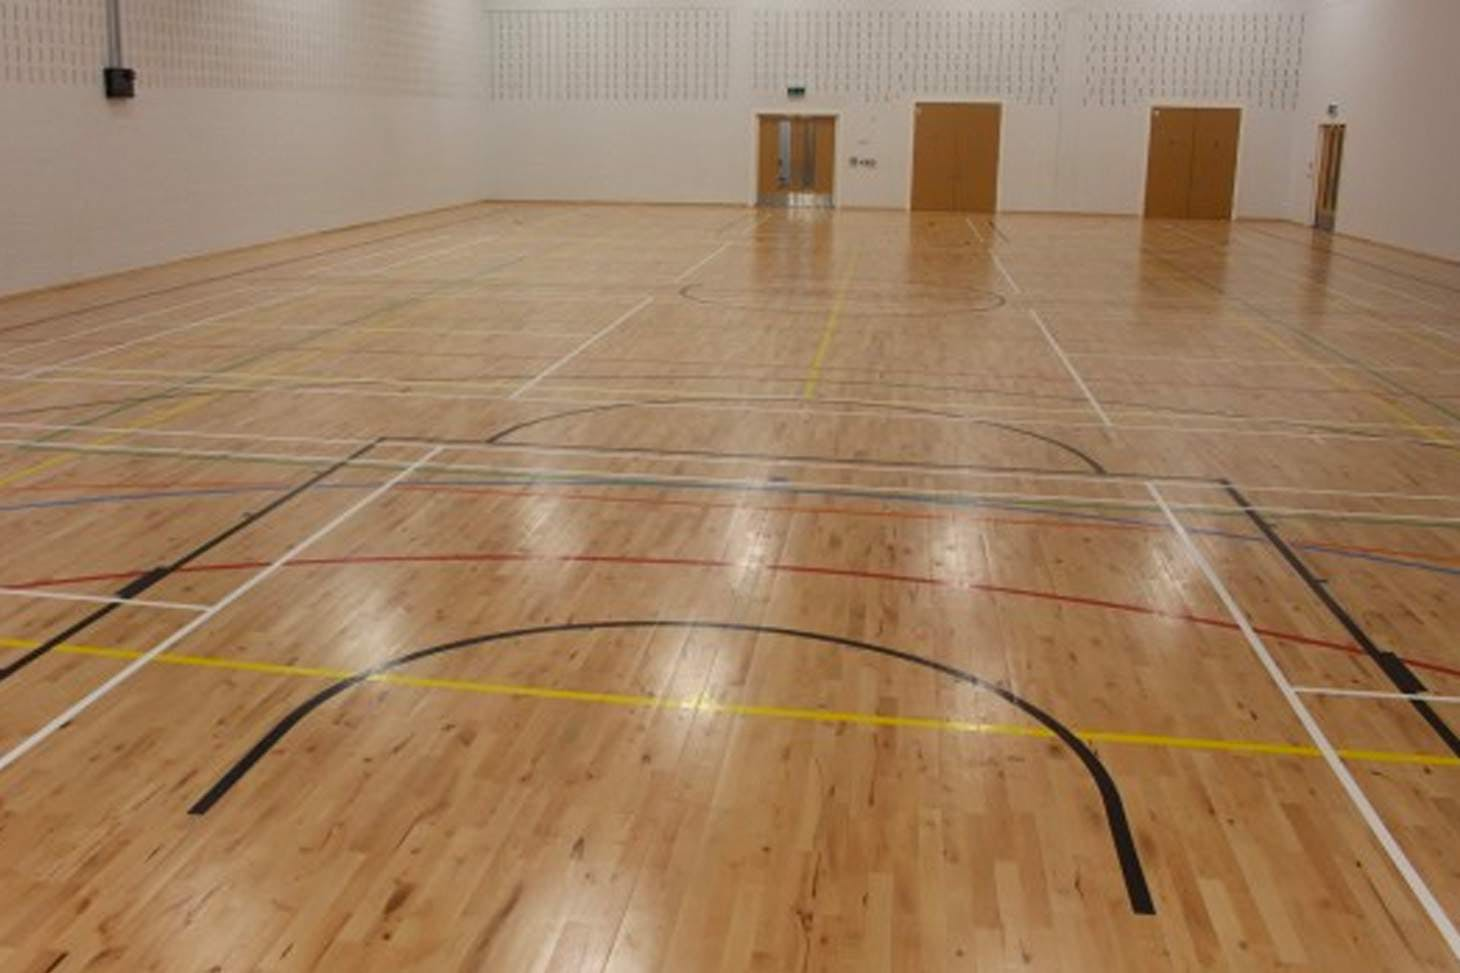 Kensington Primary Academy 5 a side | Indoor football pitch